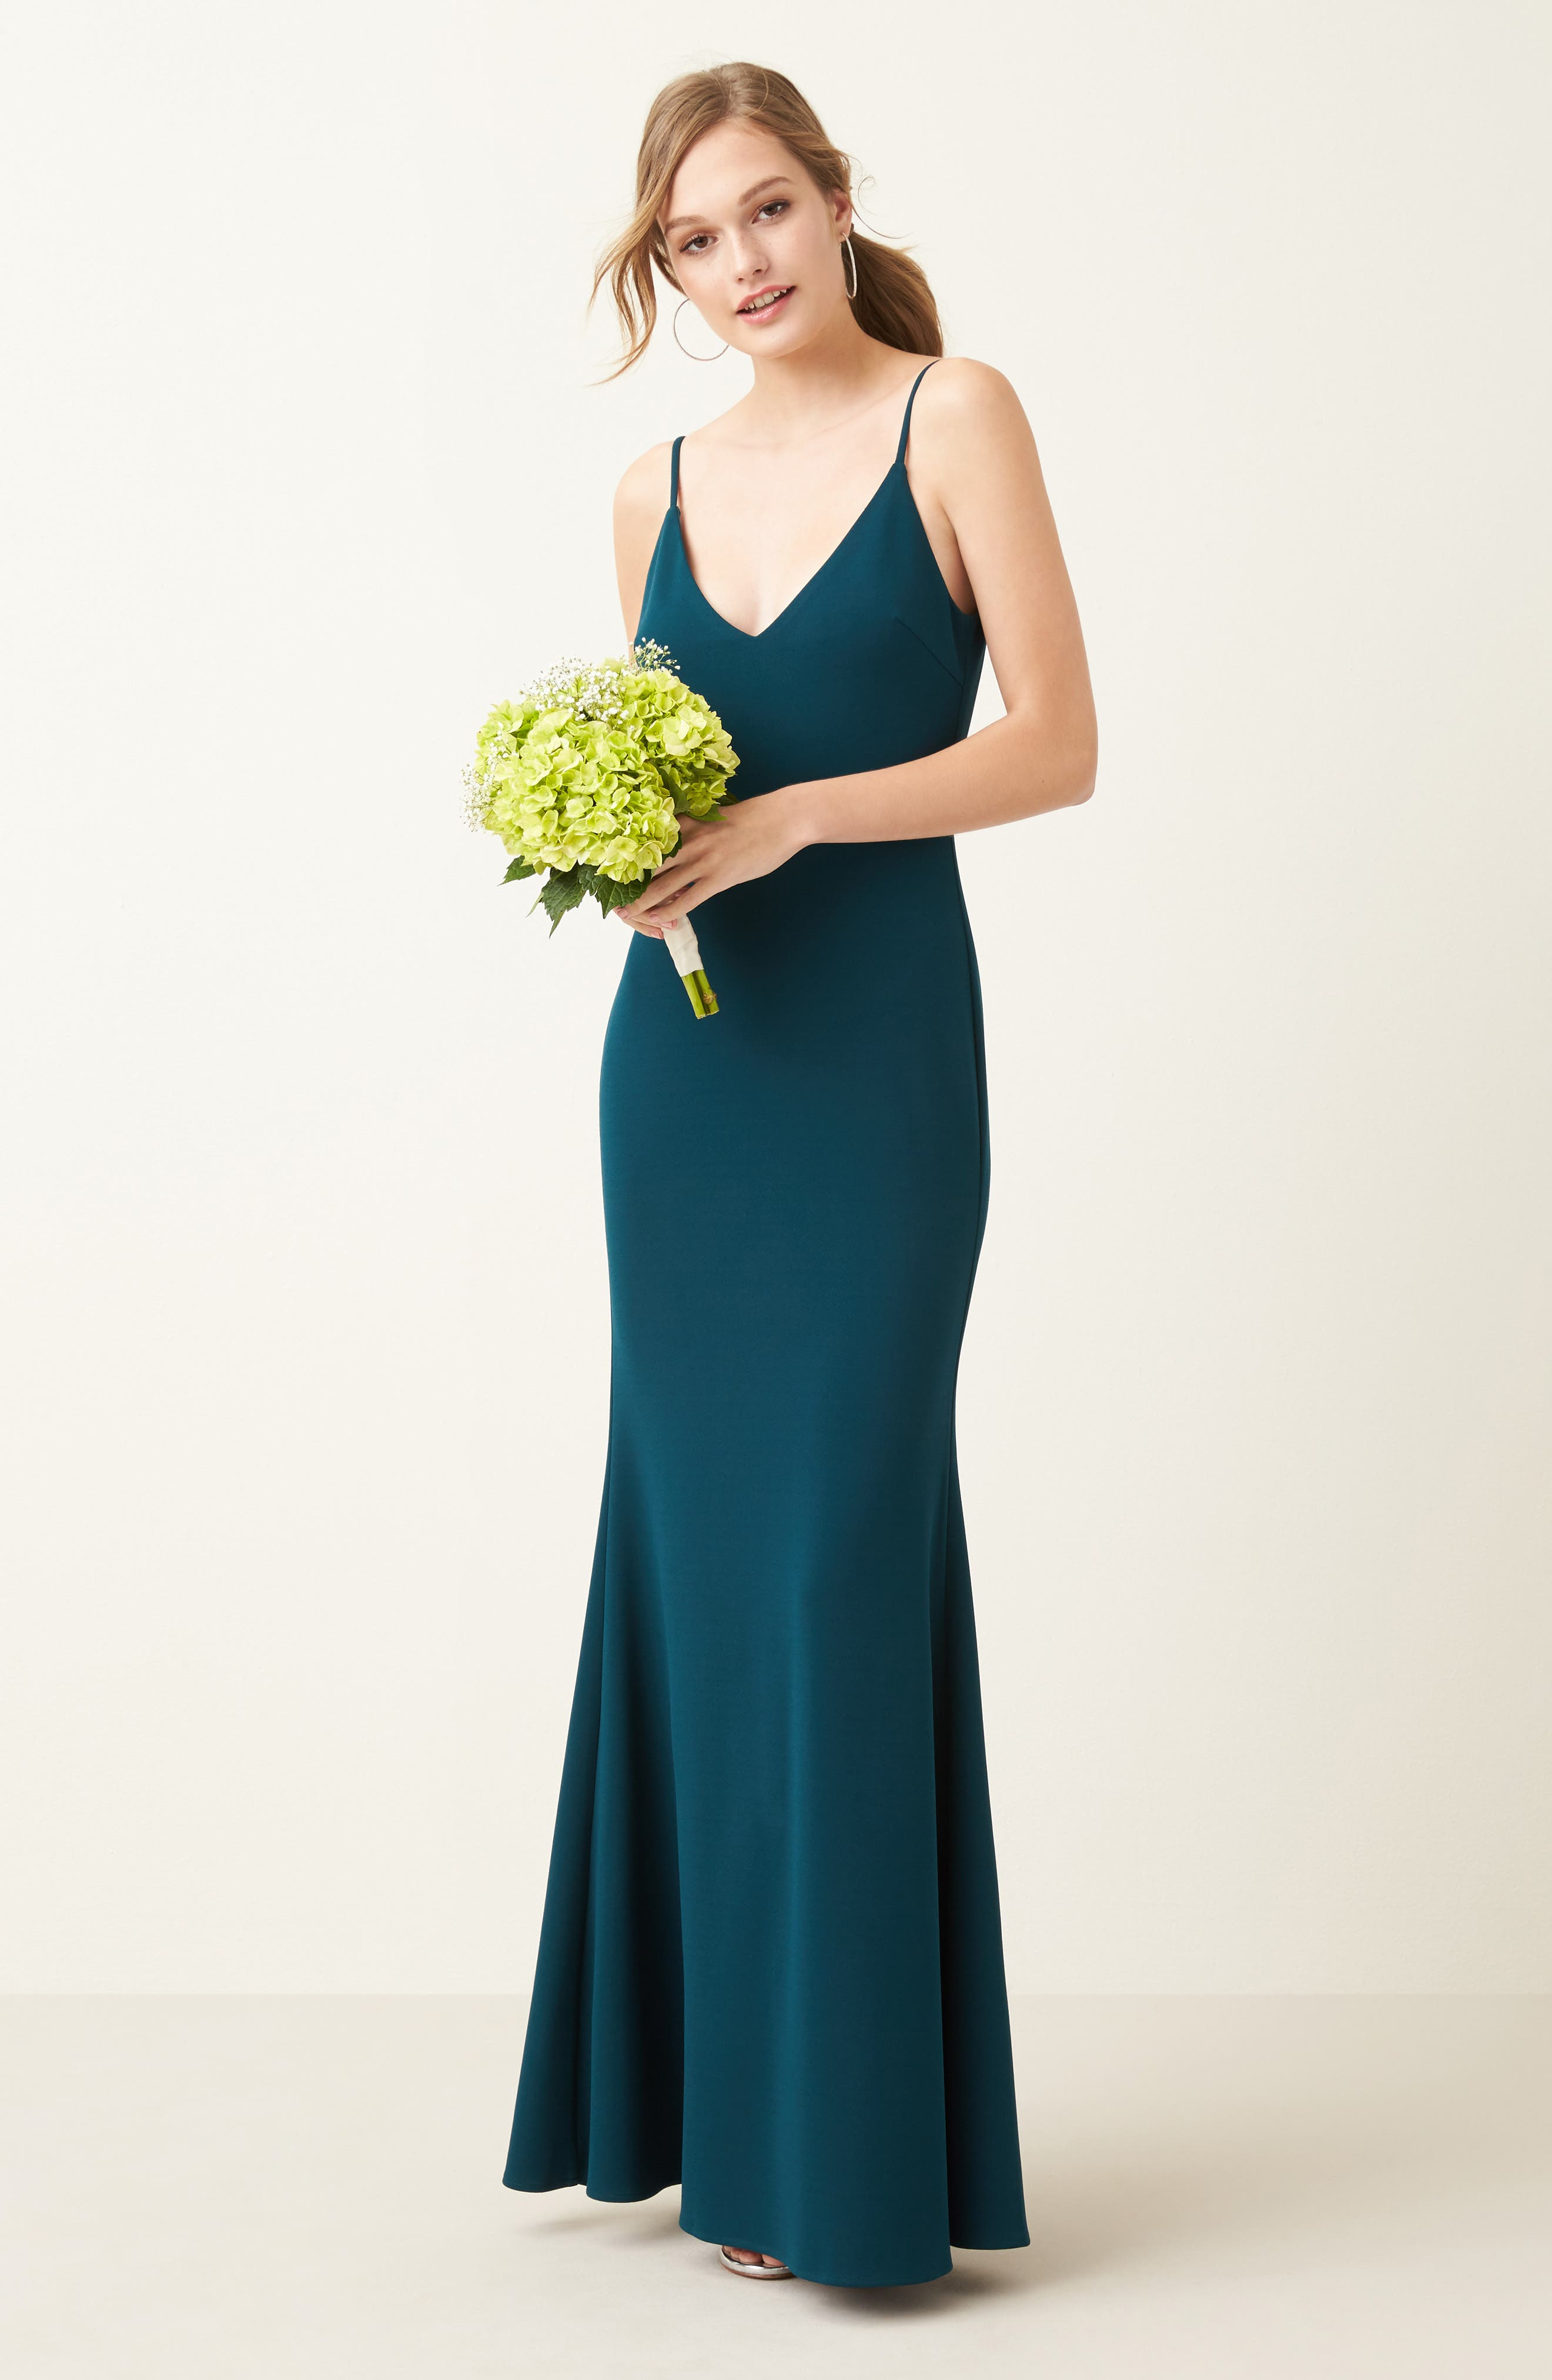 Bridesmaid wedding party dresses nordstrom ombrellifo Image collections